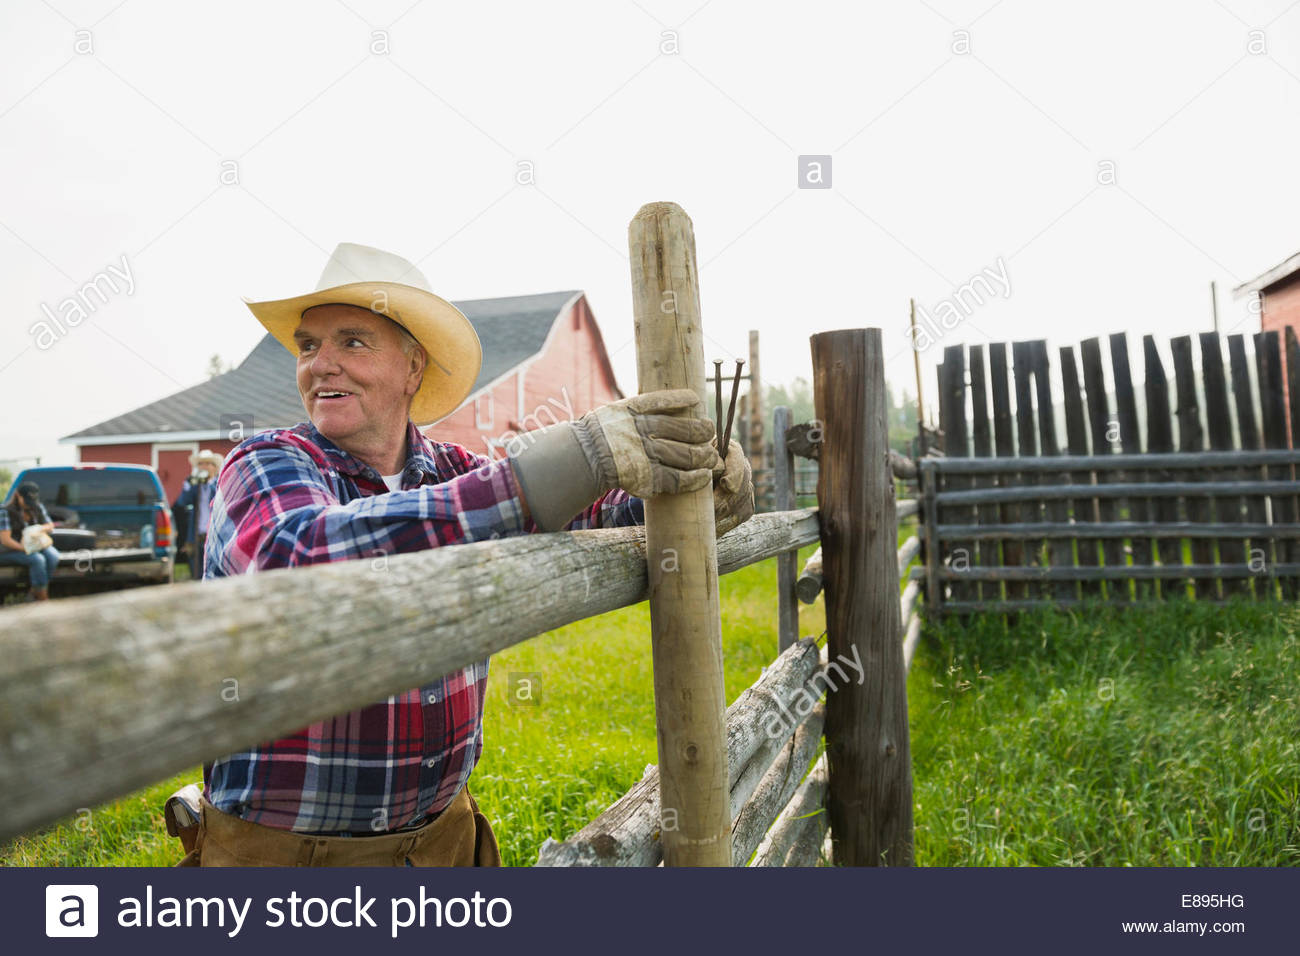 Rancher fixing fence post in pasture - Stock Image